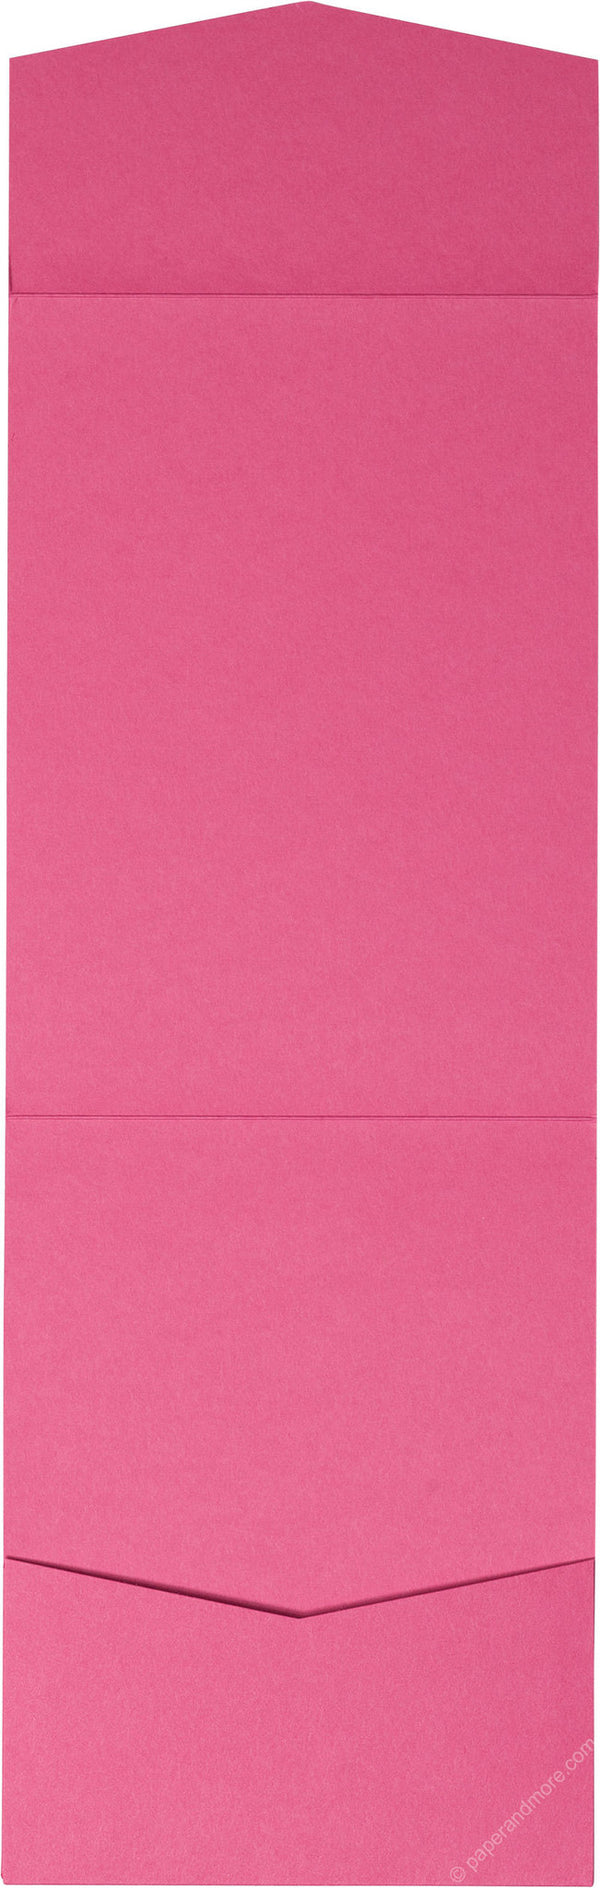 Razzle Pink Solid Pocket Invitation Card, A7 Cascade - Paperandmore.com